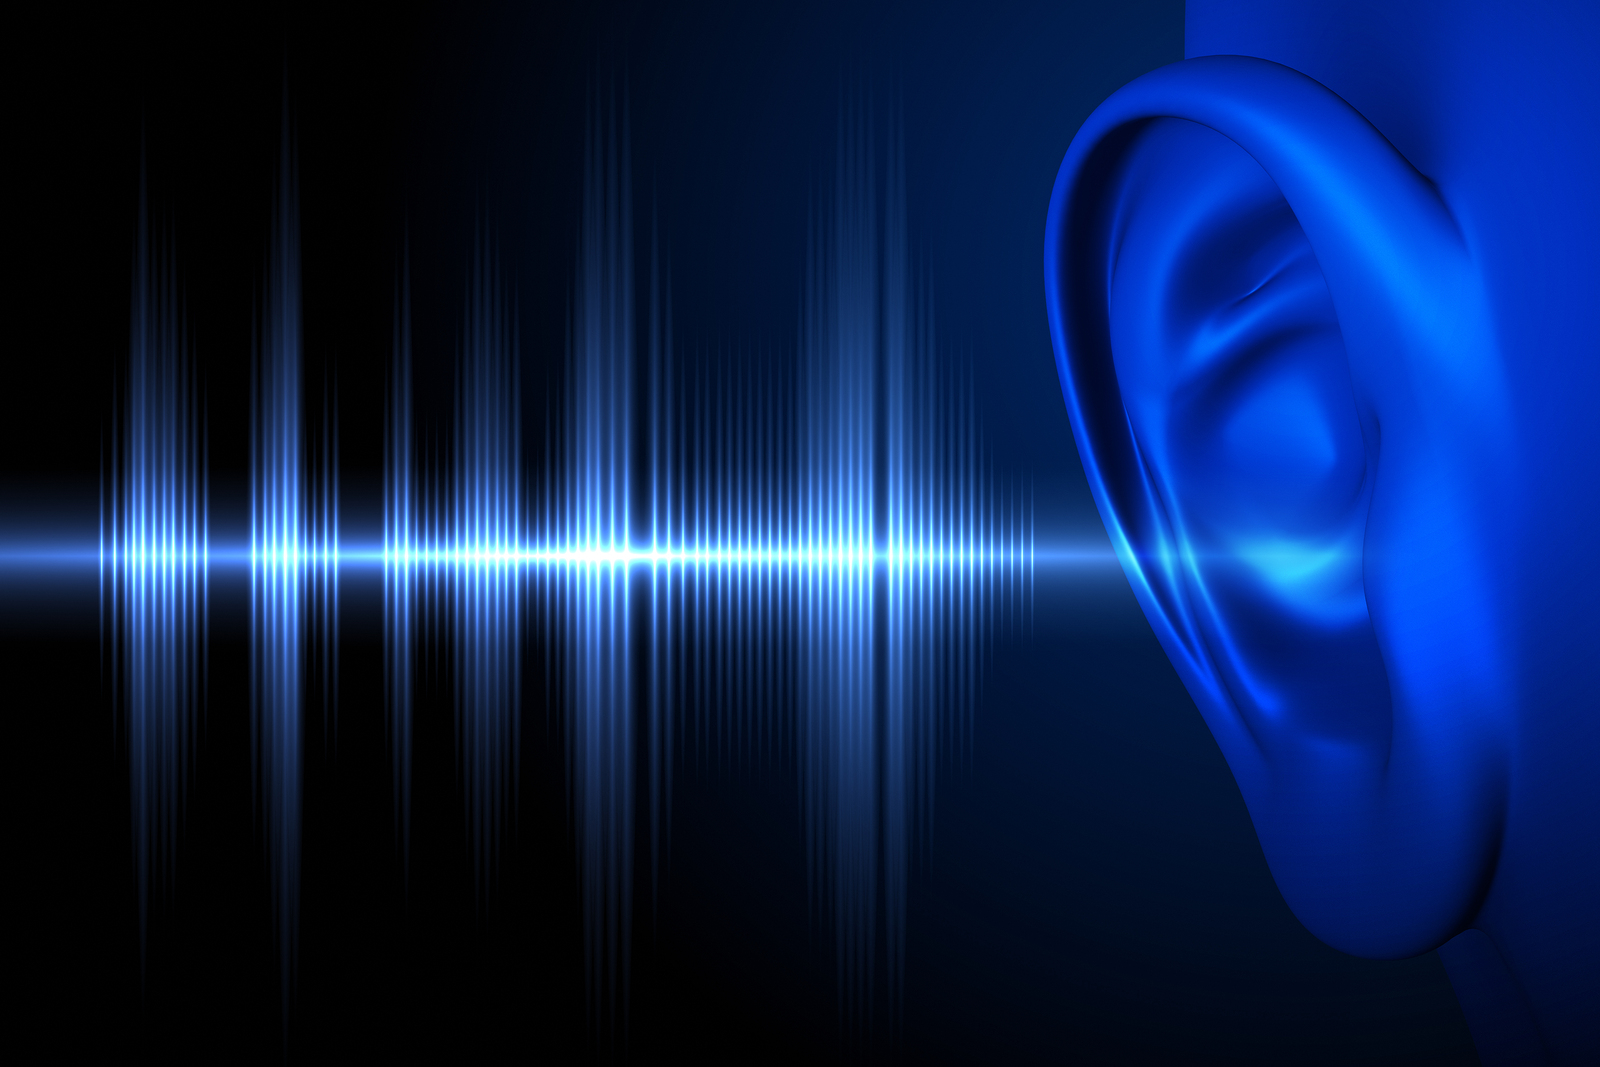 Conceptual image about human hearing. Soundwave and human ear